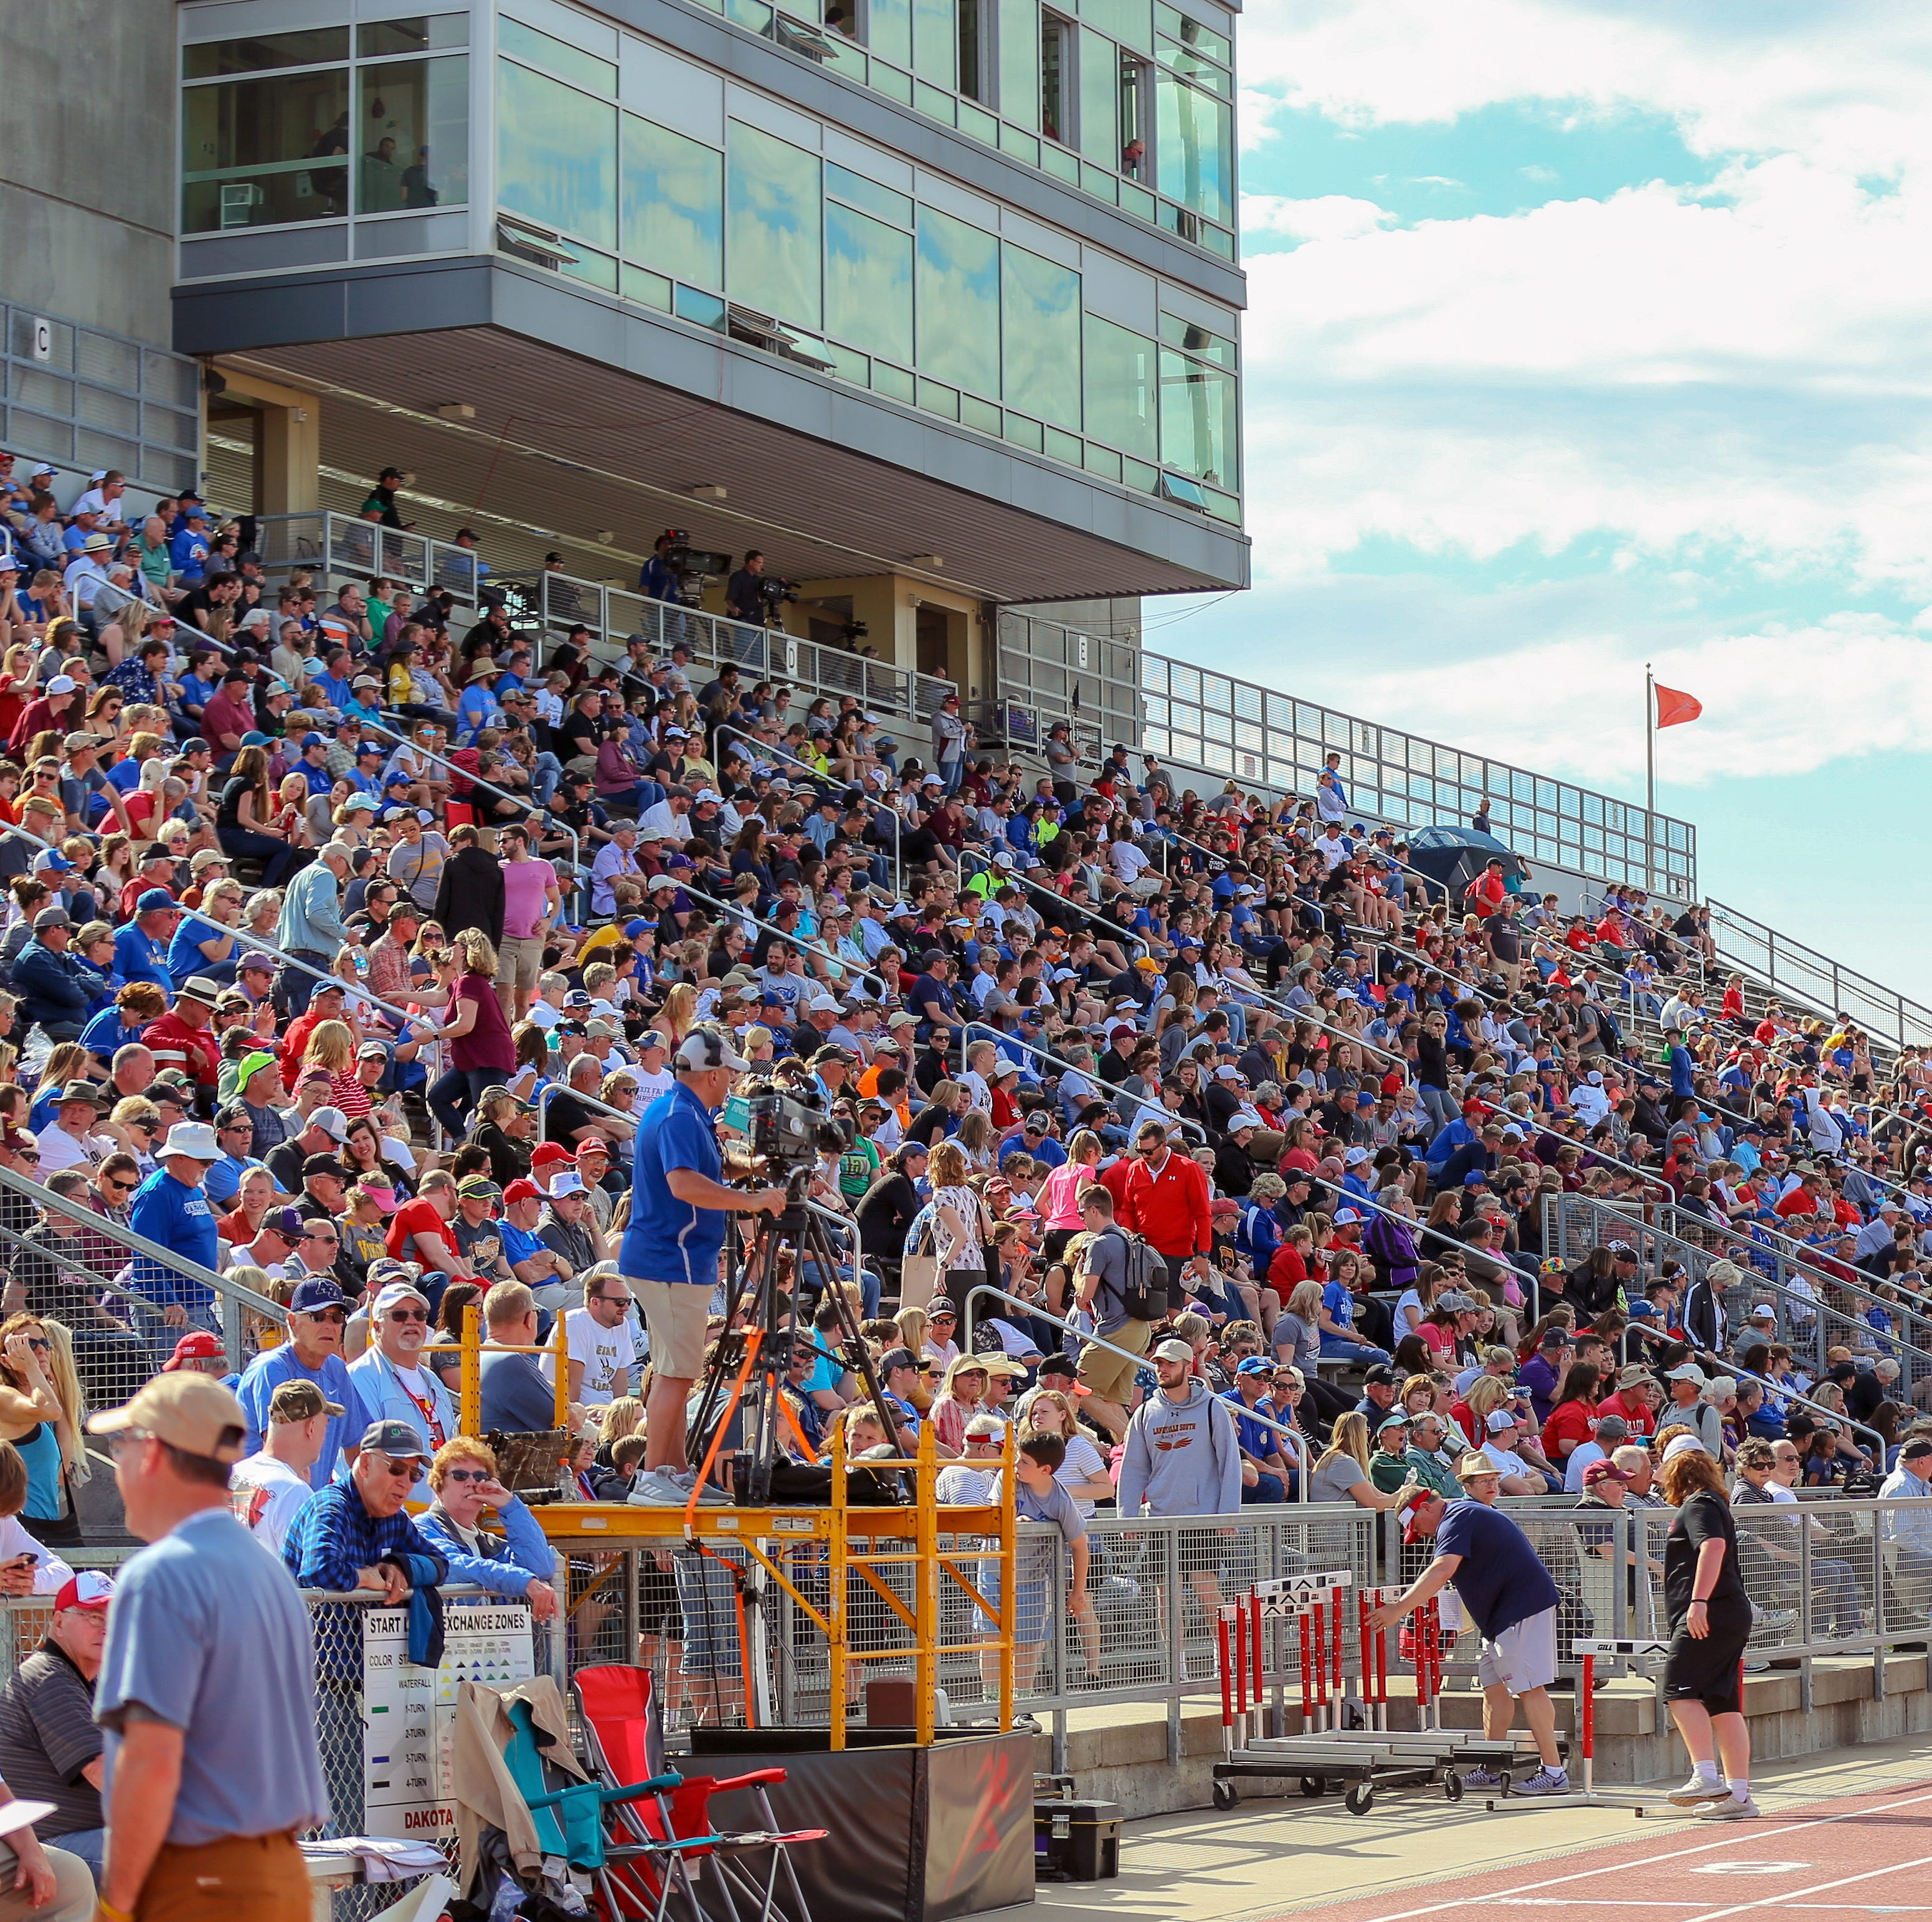 2019 South Dakota High School State Track and Field Meet: Complete schedule